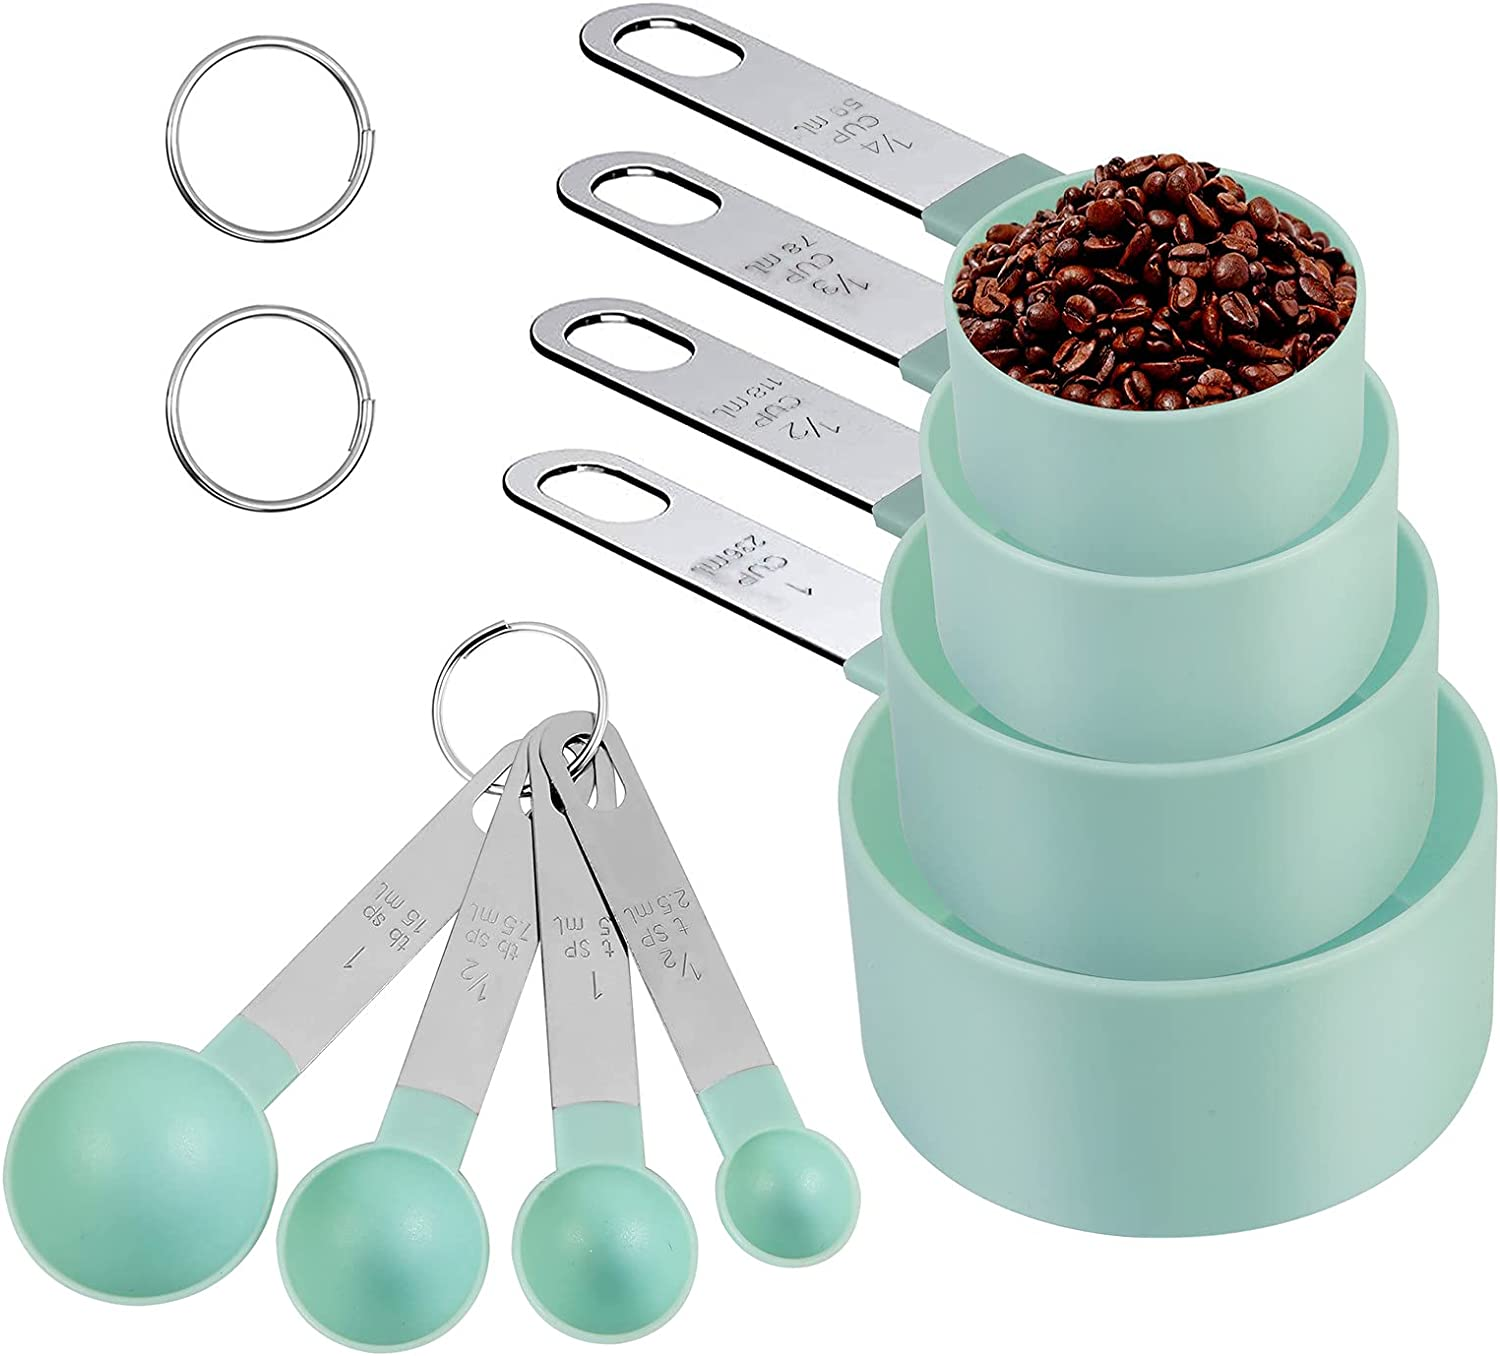 Holriaye Measuring Cups and Spoons 8-Piece Set, Plastic Measure Cups Accurate Measuring Spoons with Stainless Steel Handle BPA free and Dishwasher Safe for Dry and Liquid Ingredient